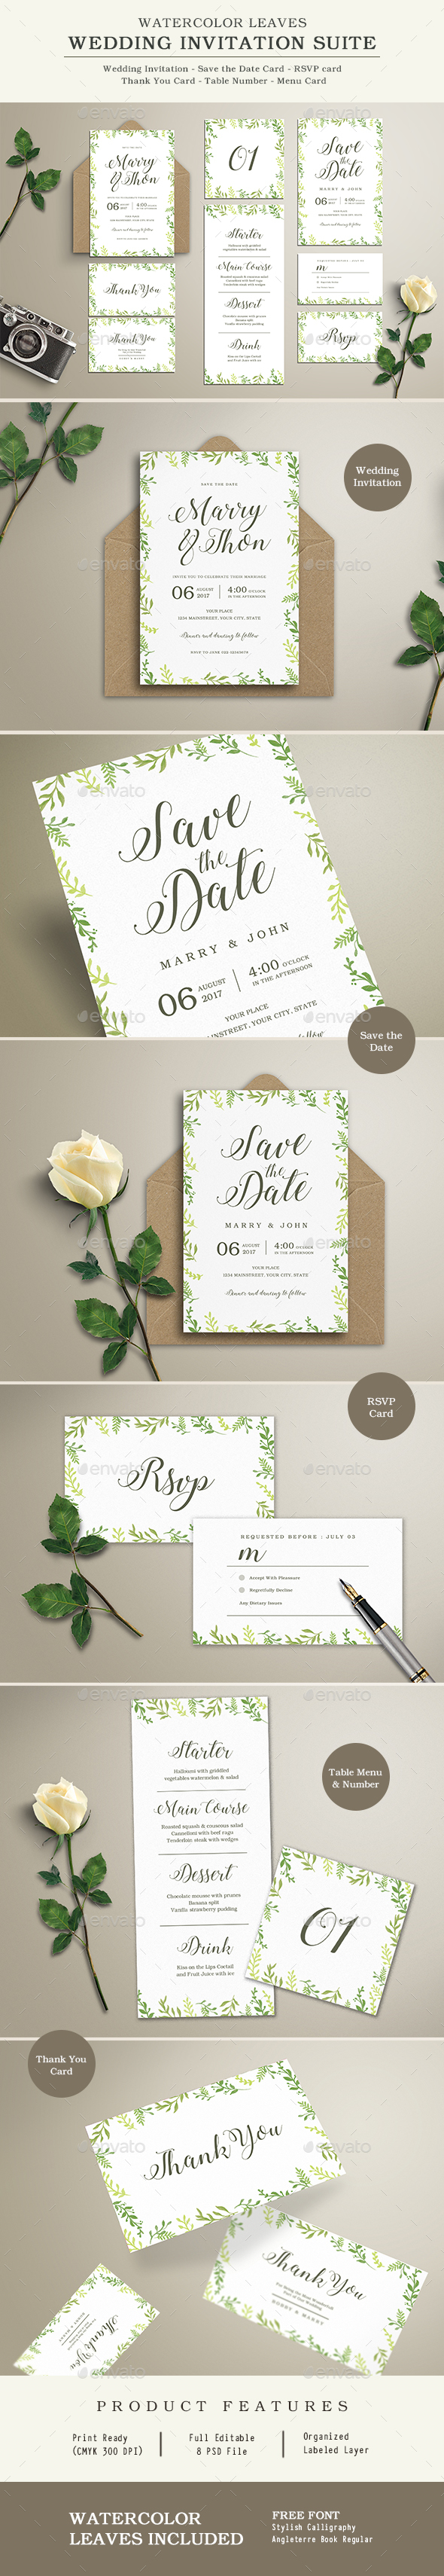 Watercolor Leaves Wedding Invitation Suite - Wedding Greeting Cards